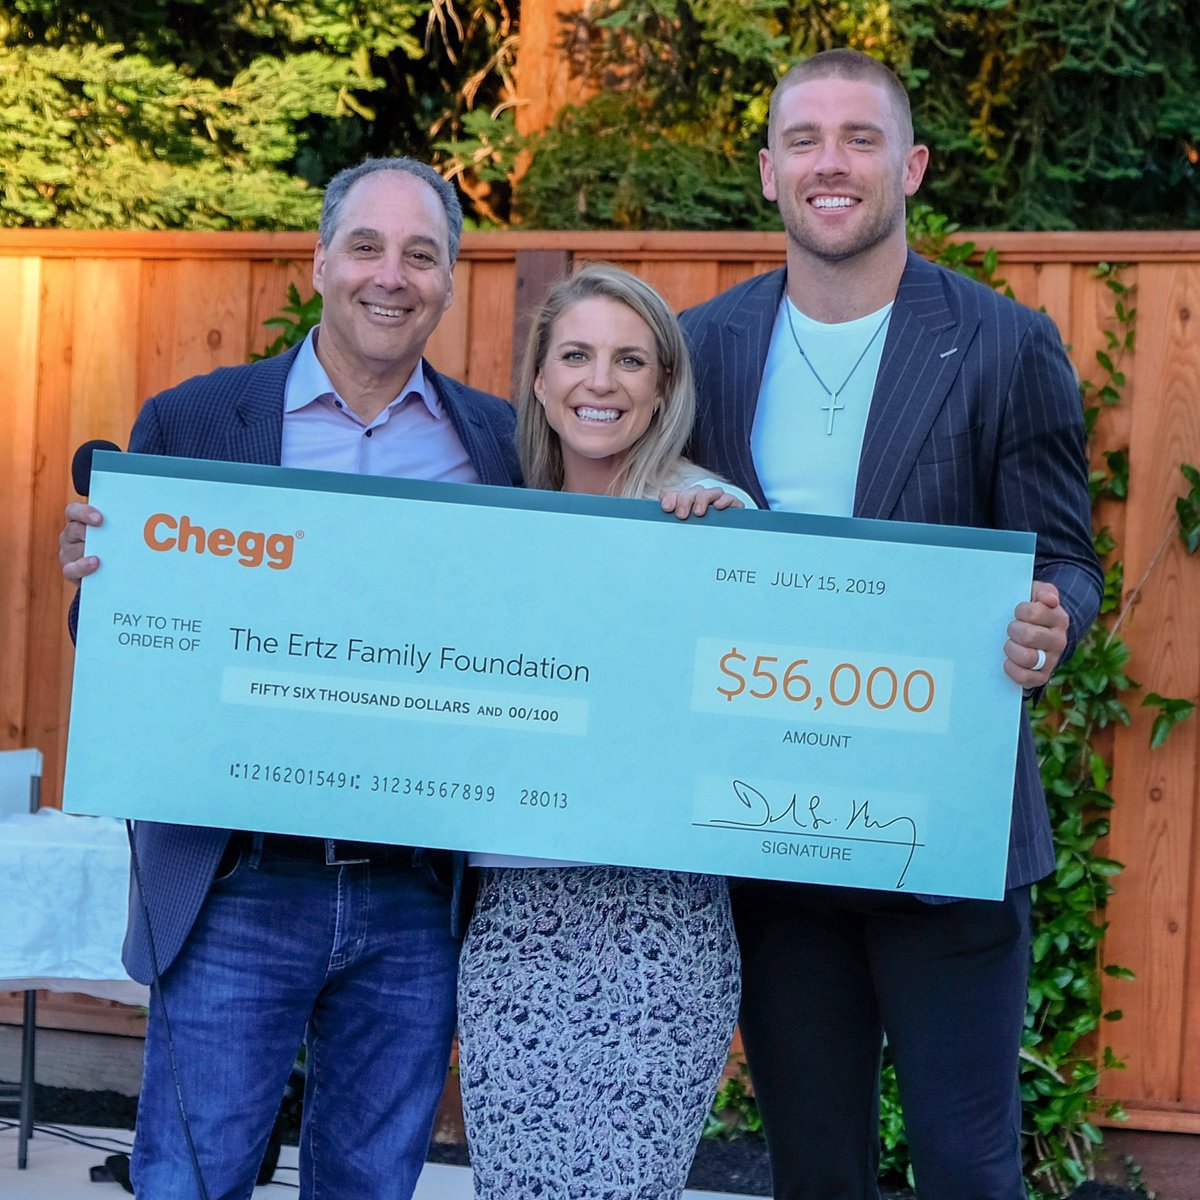 We're motivated every day by the selfless generosity of our friends, family, partners, and supporters who help us do what we do. A special thanks to @Chegg who donated $56,000 dollars to our mission at the Ertz Par-Tee Golf Tournament this past week in NorCal. #MondayMotivation